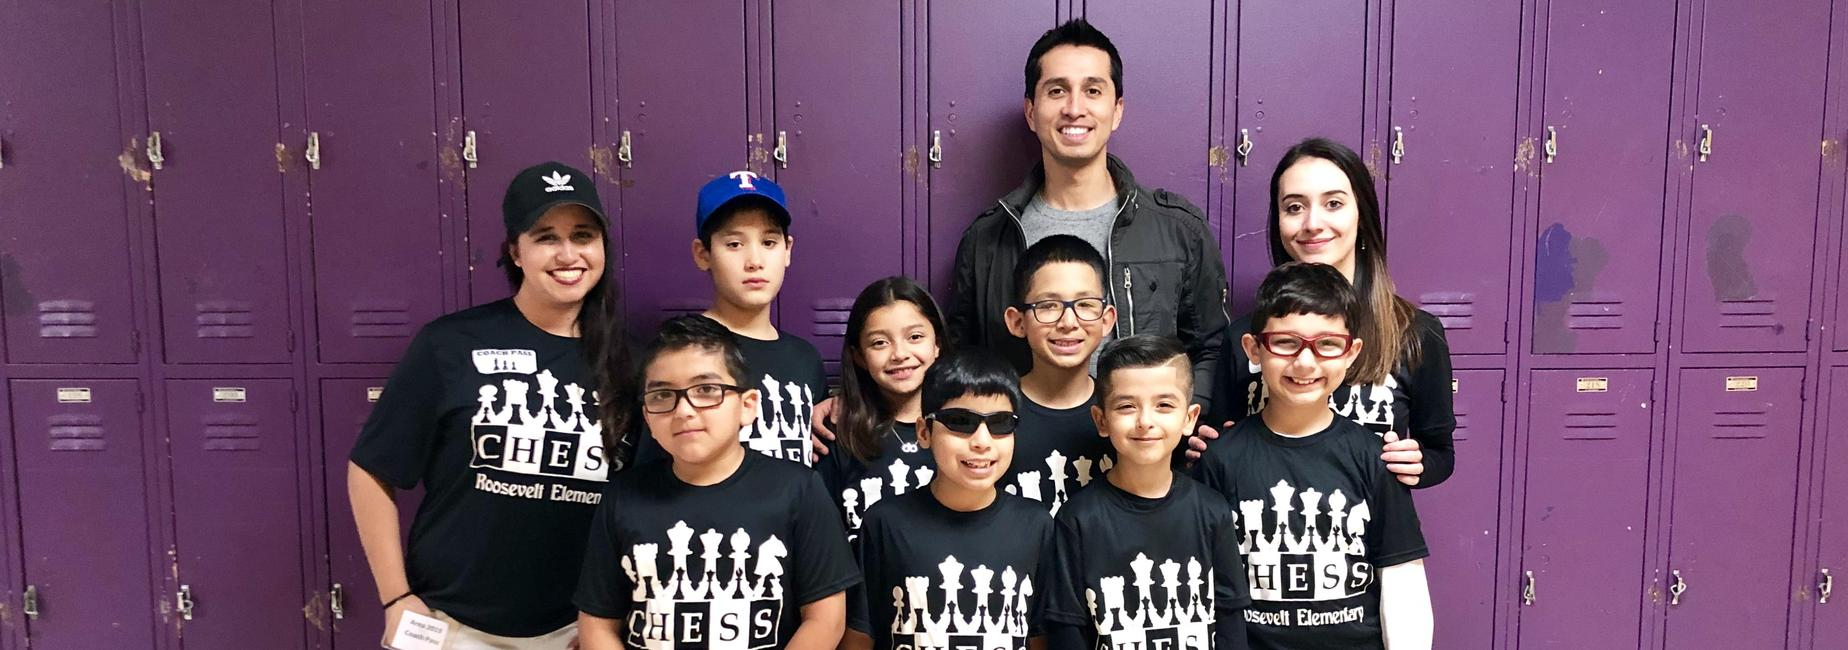 Roosevelt Chess Team